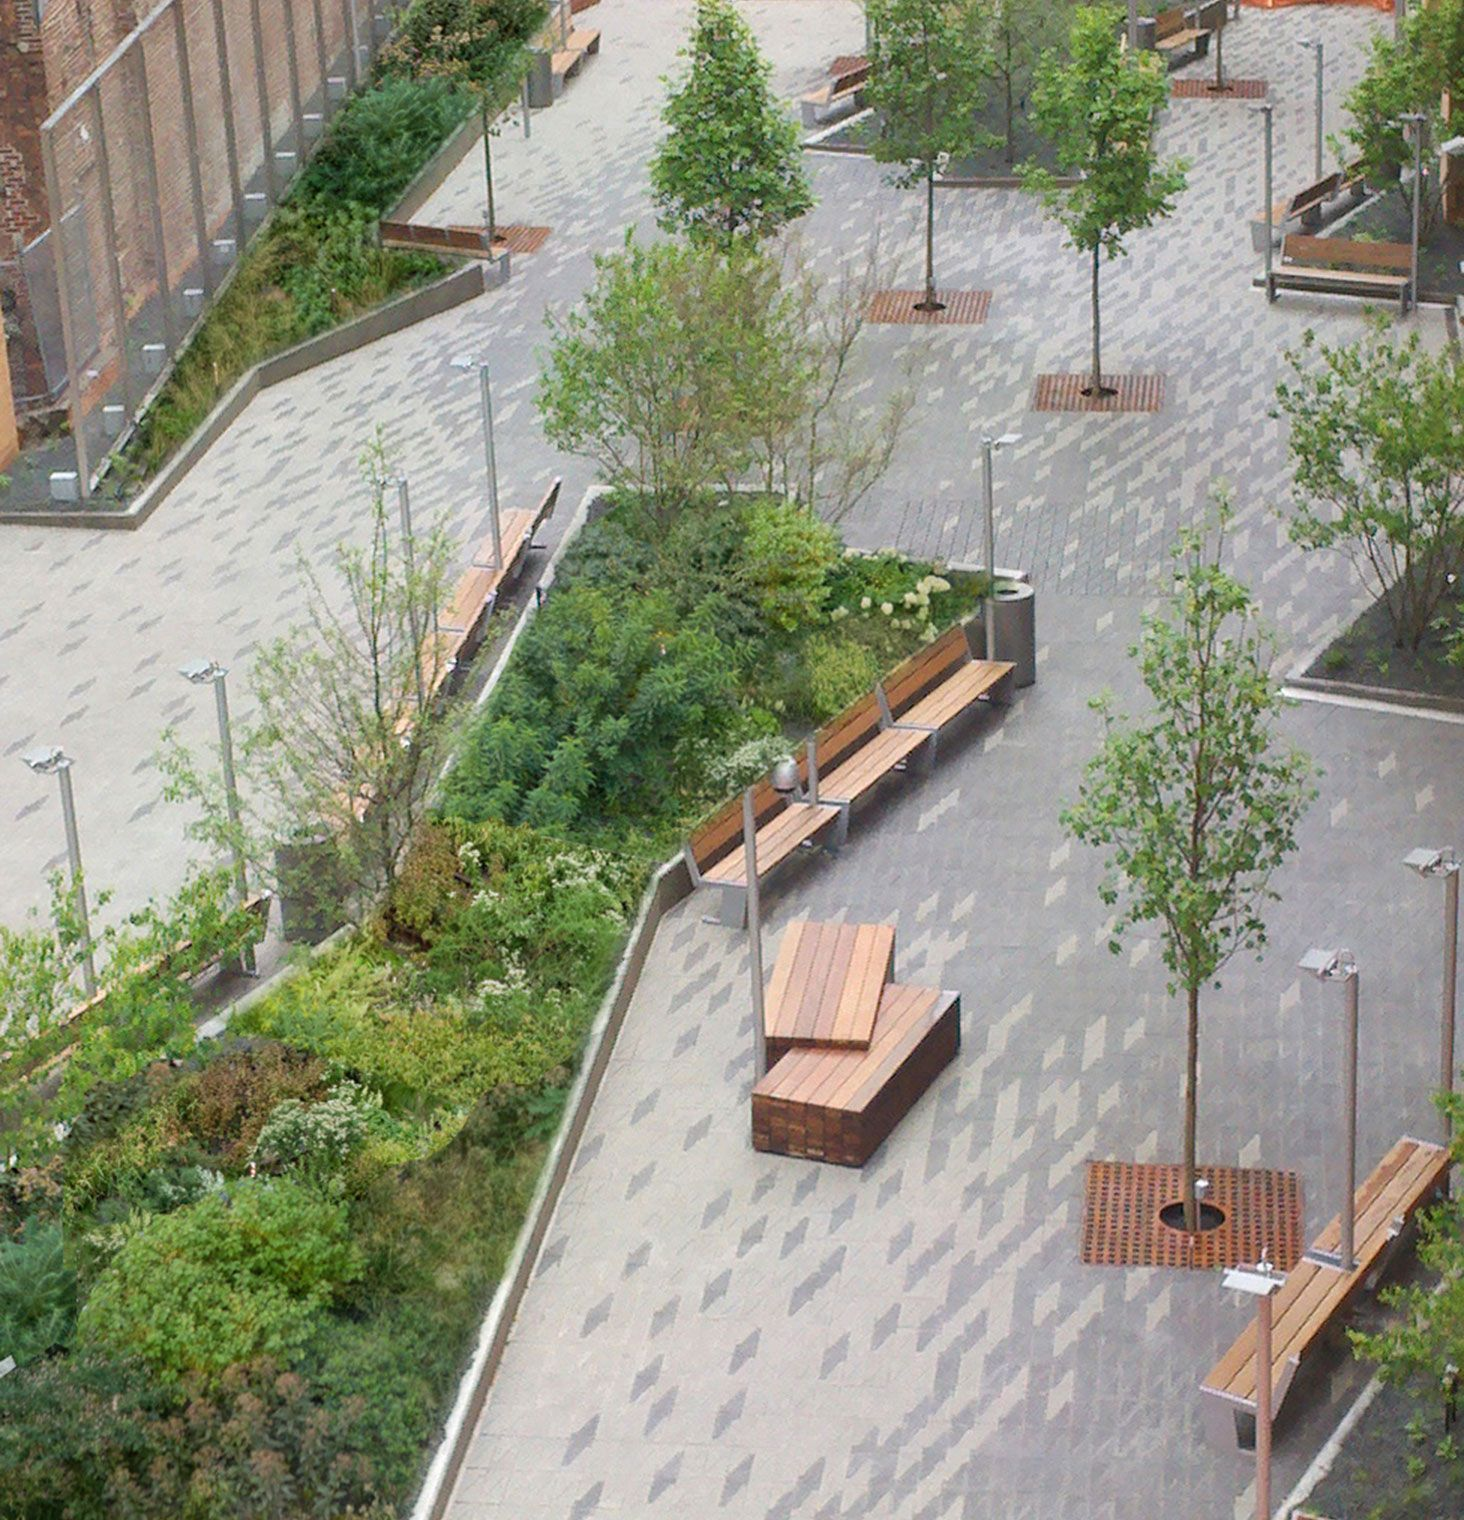 Beekman plazas by james corner field operations and piet for Urban garden design